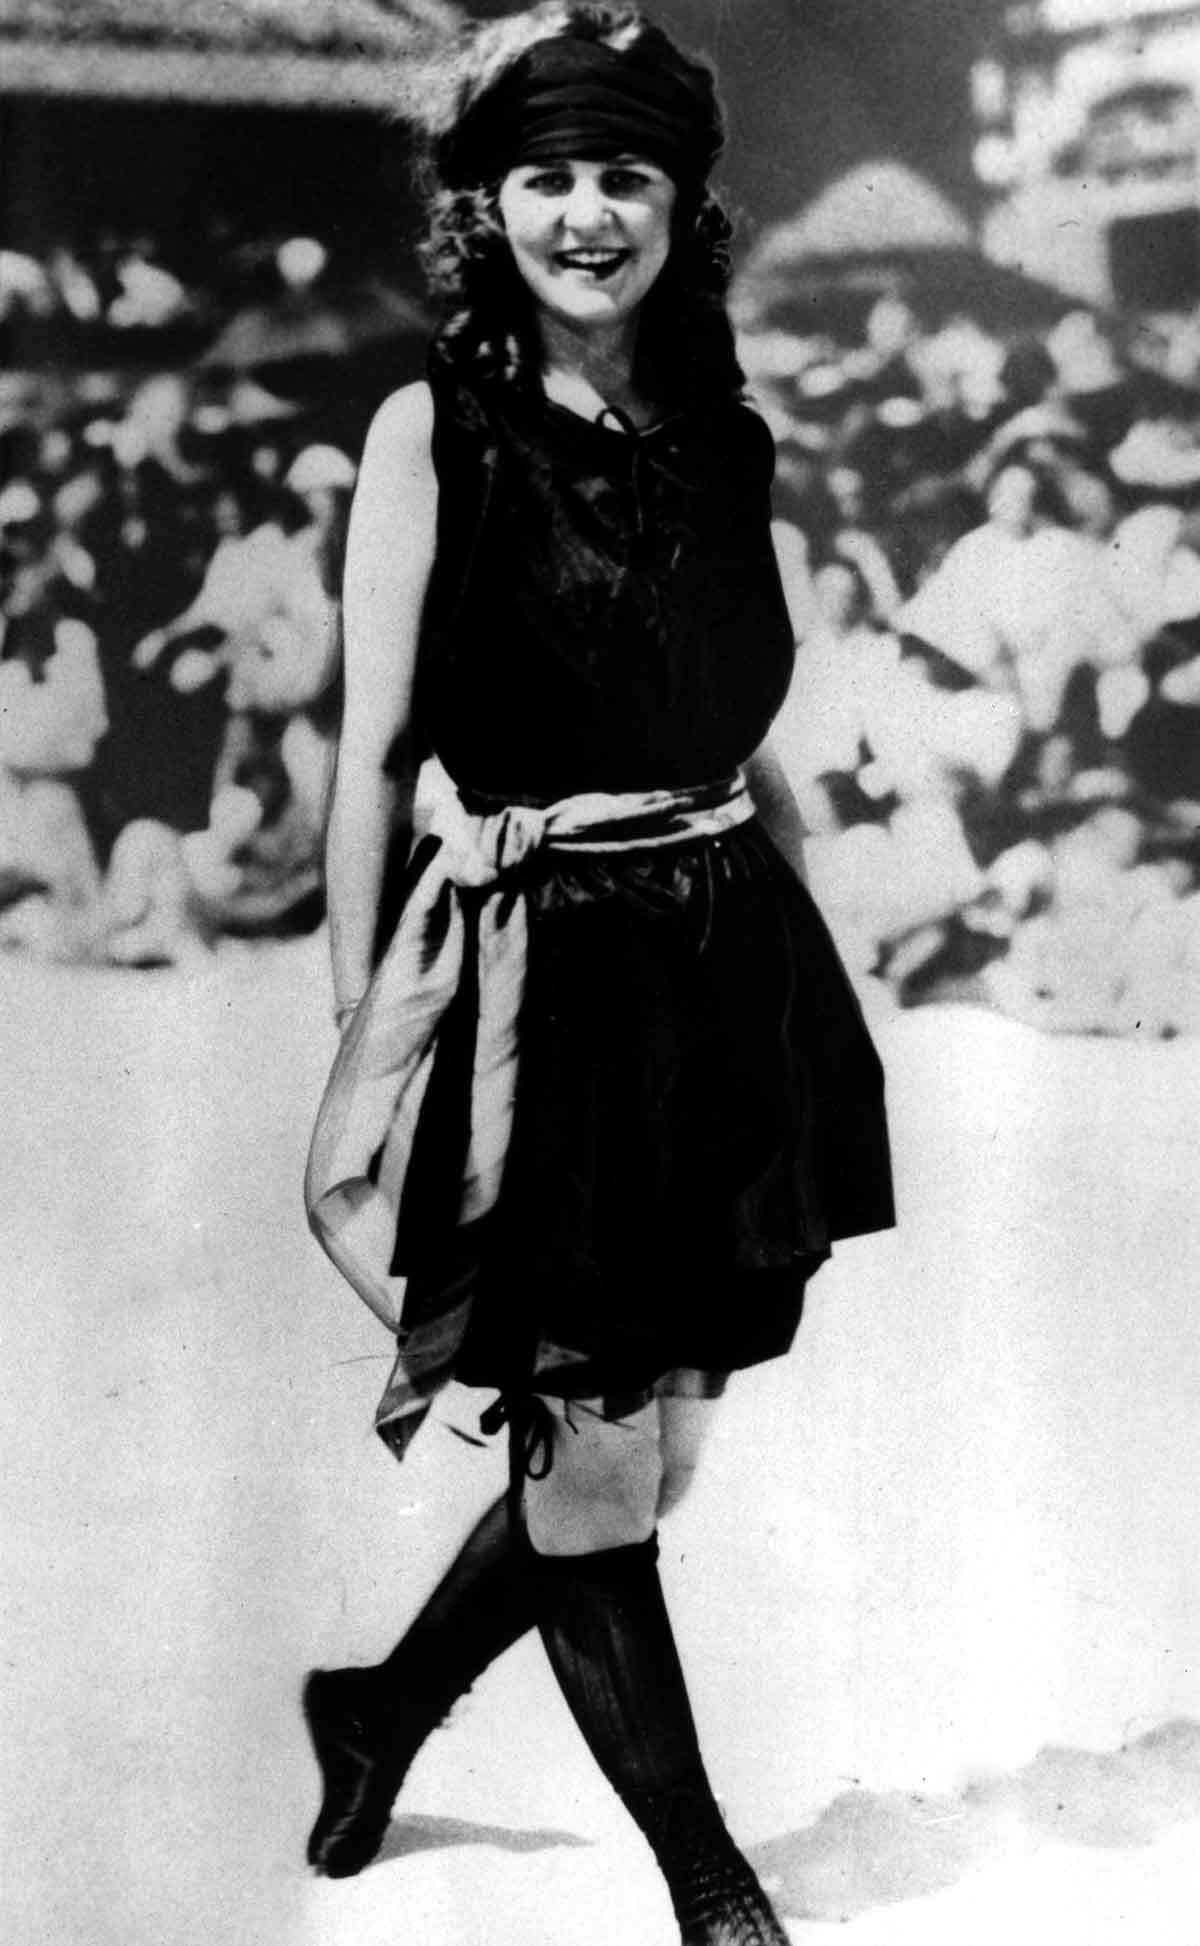 Margaret Gorman, of Washington, D.C., poses after winning the first Miss America pageant in Atlantic City, N.J., in Sept. 1921. (AP Photo)